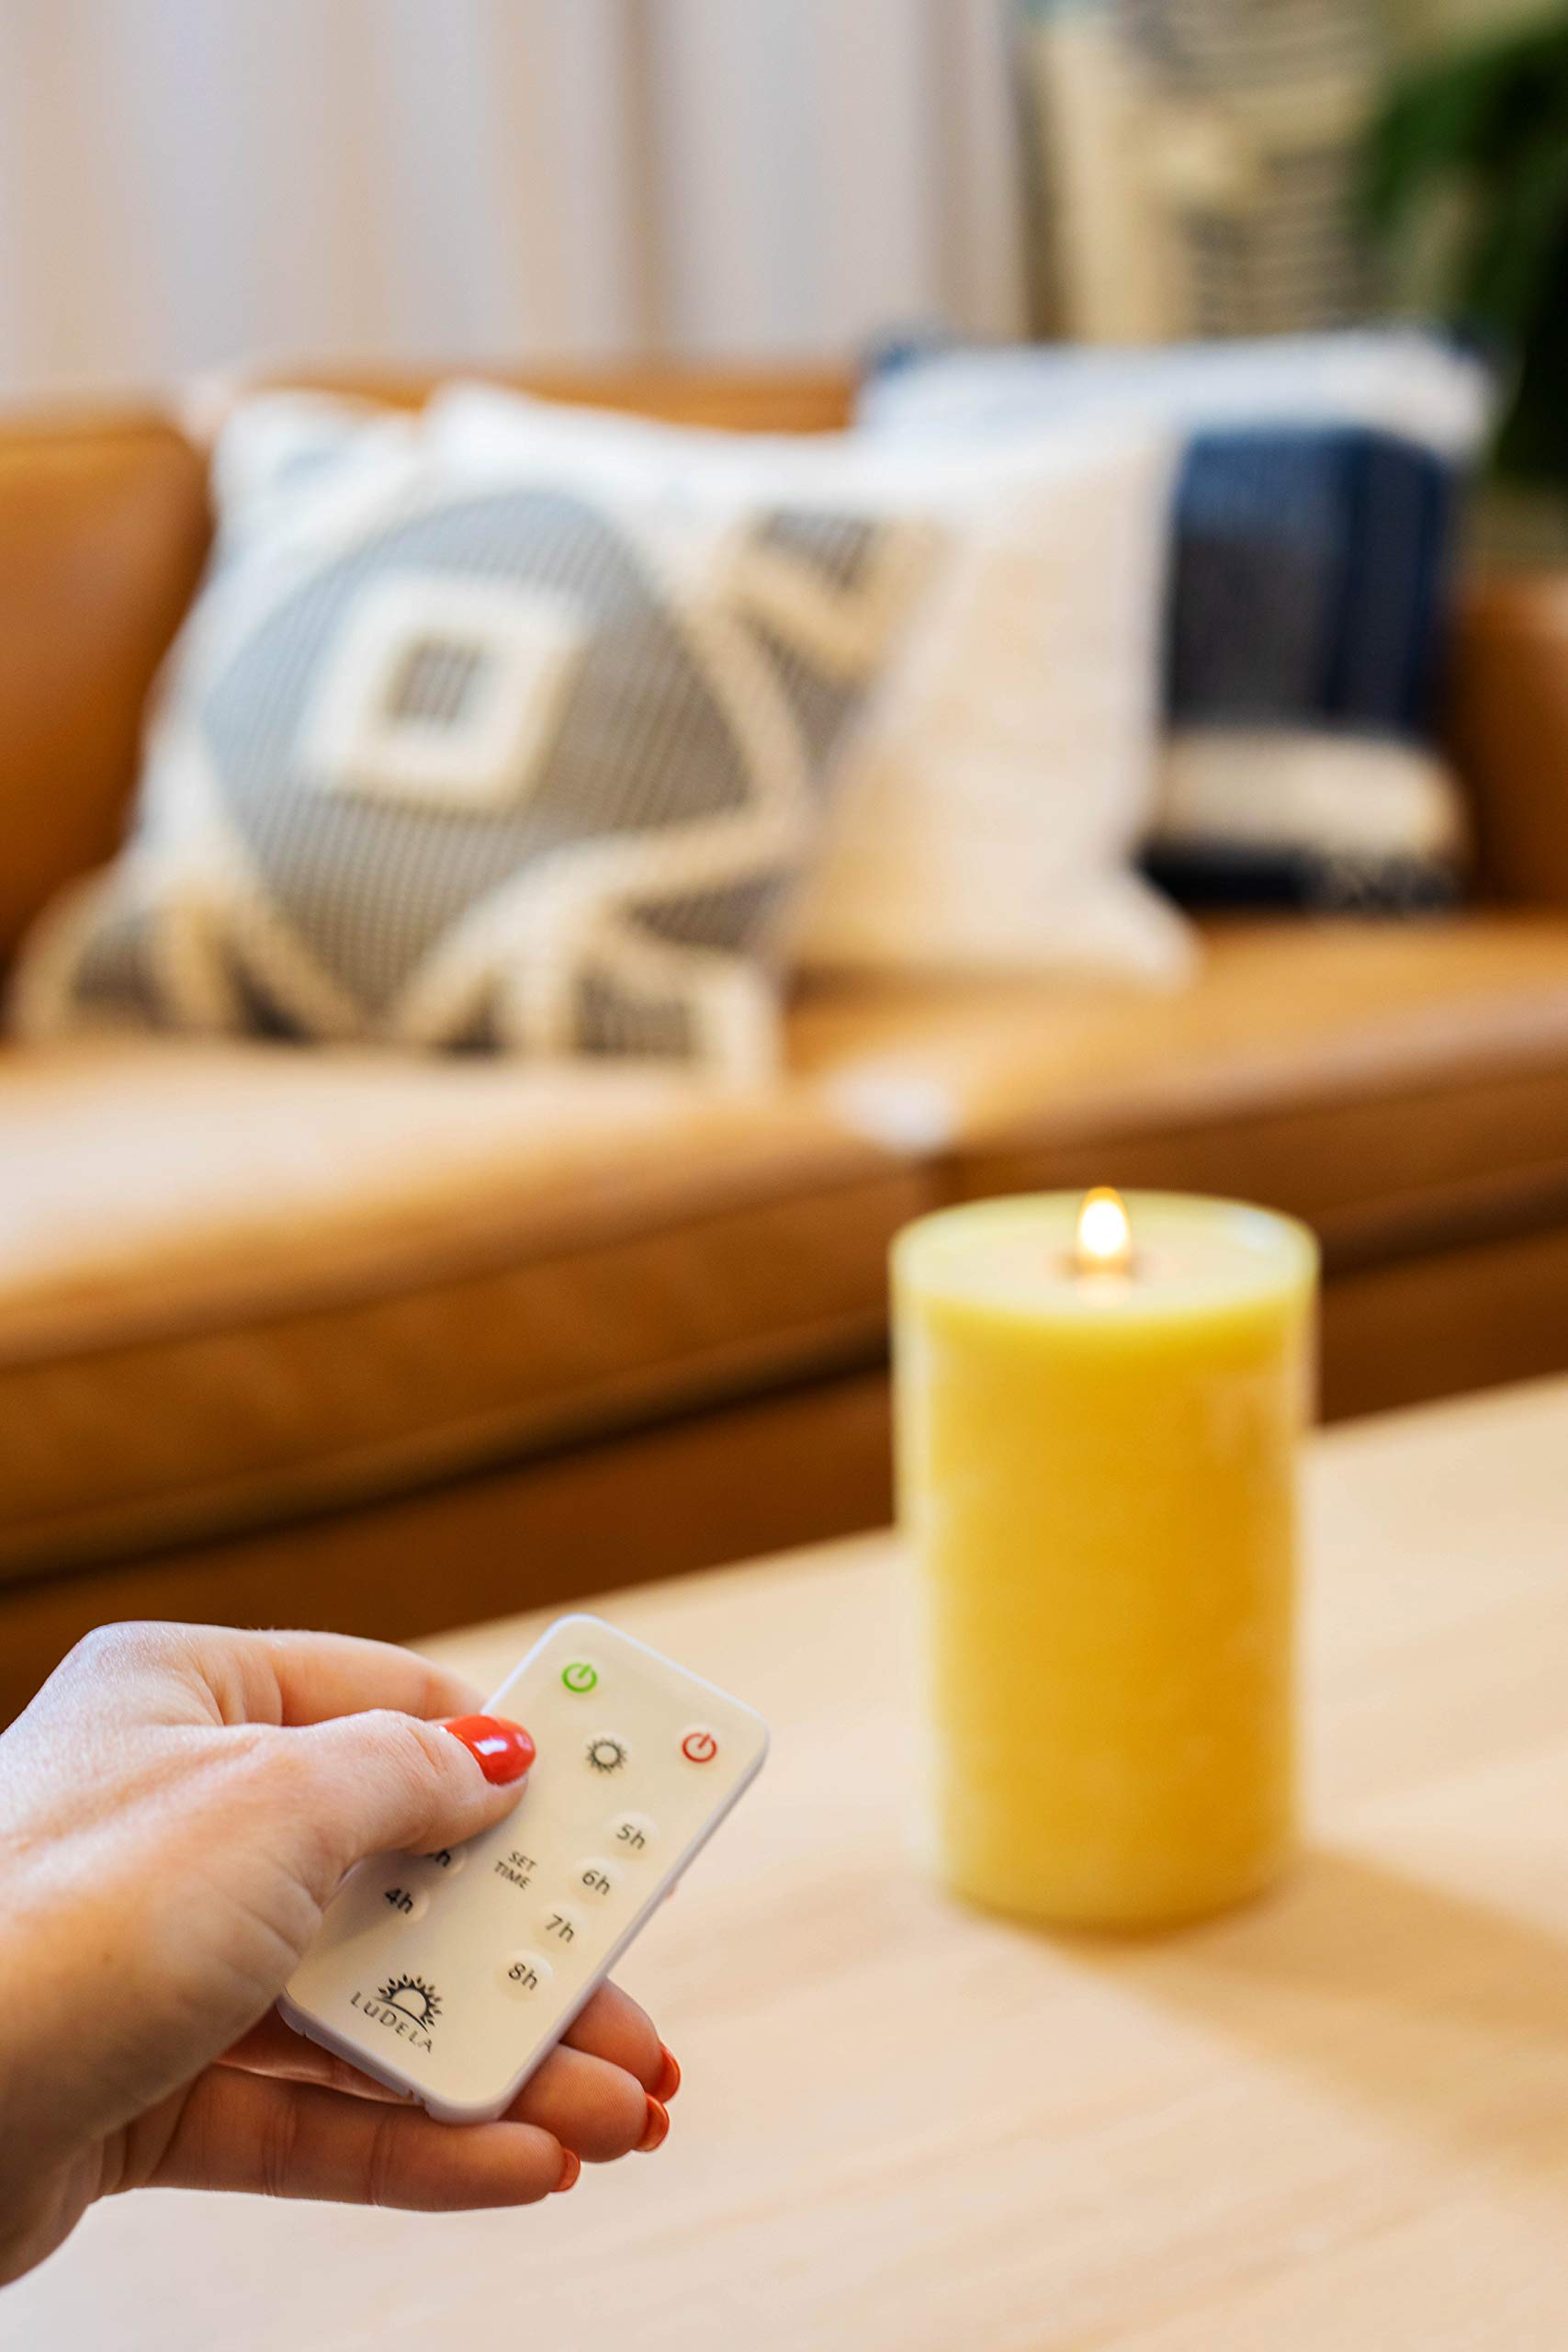 LuDela Remote Control Real-Flame Candle Starter Set | Smart Candle with Remote Control and Alexa Compatibility | Built-in Safety Technology | Always Bright, Natural Candlelight at a Touch of a Button by LuDela (Image #4)